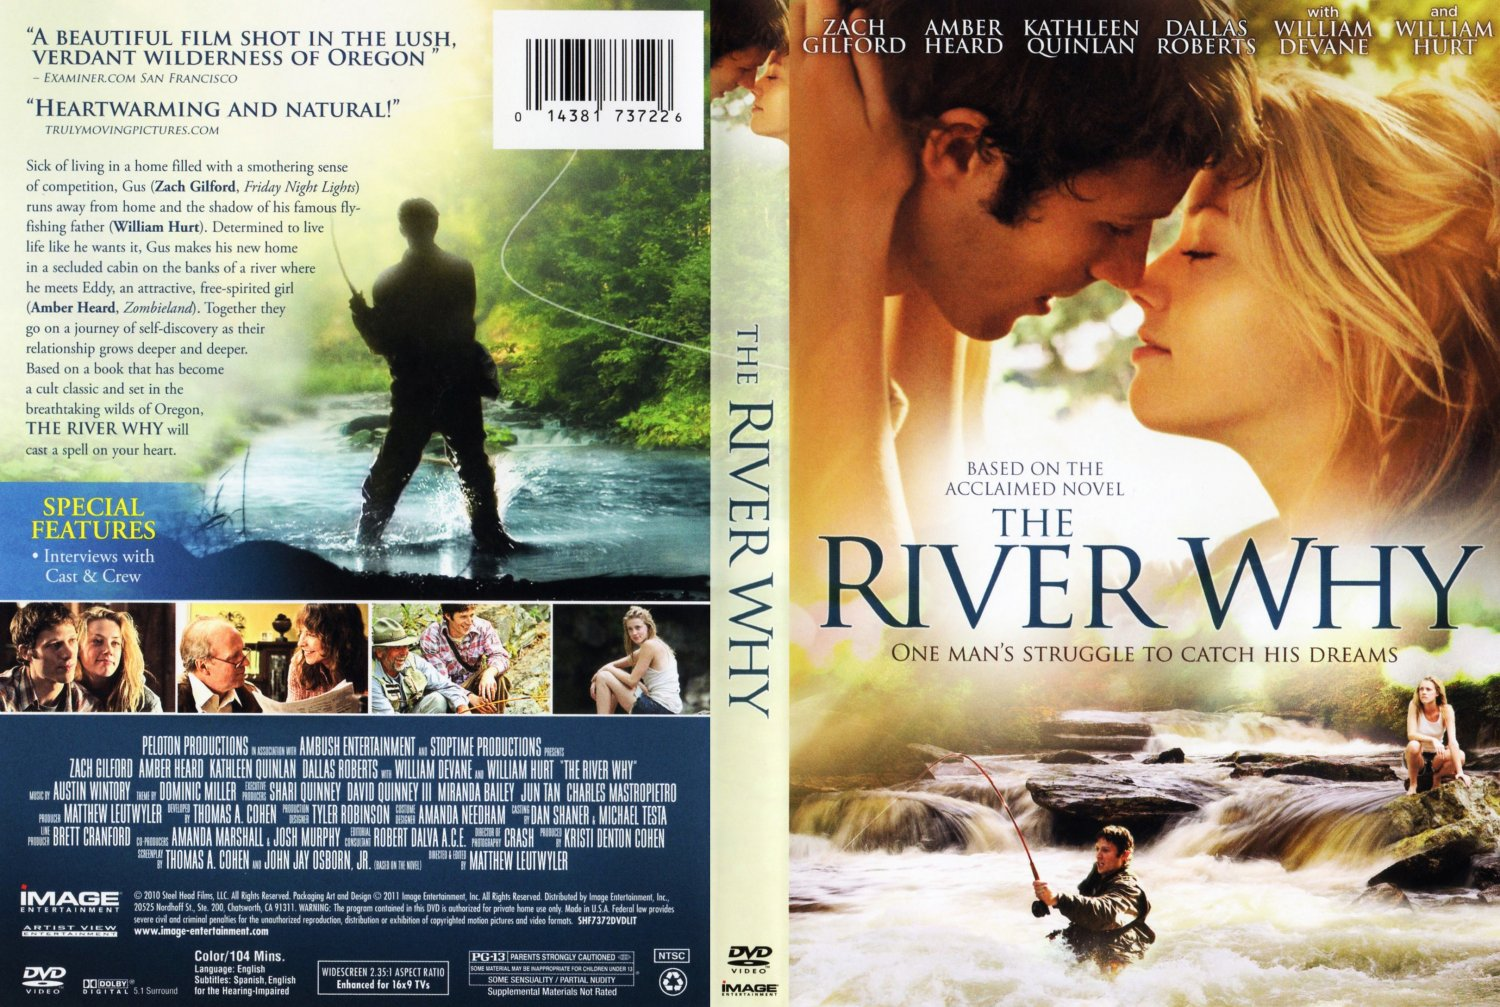 The River Why DVD cover